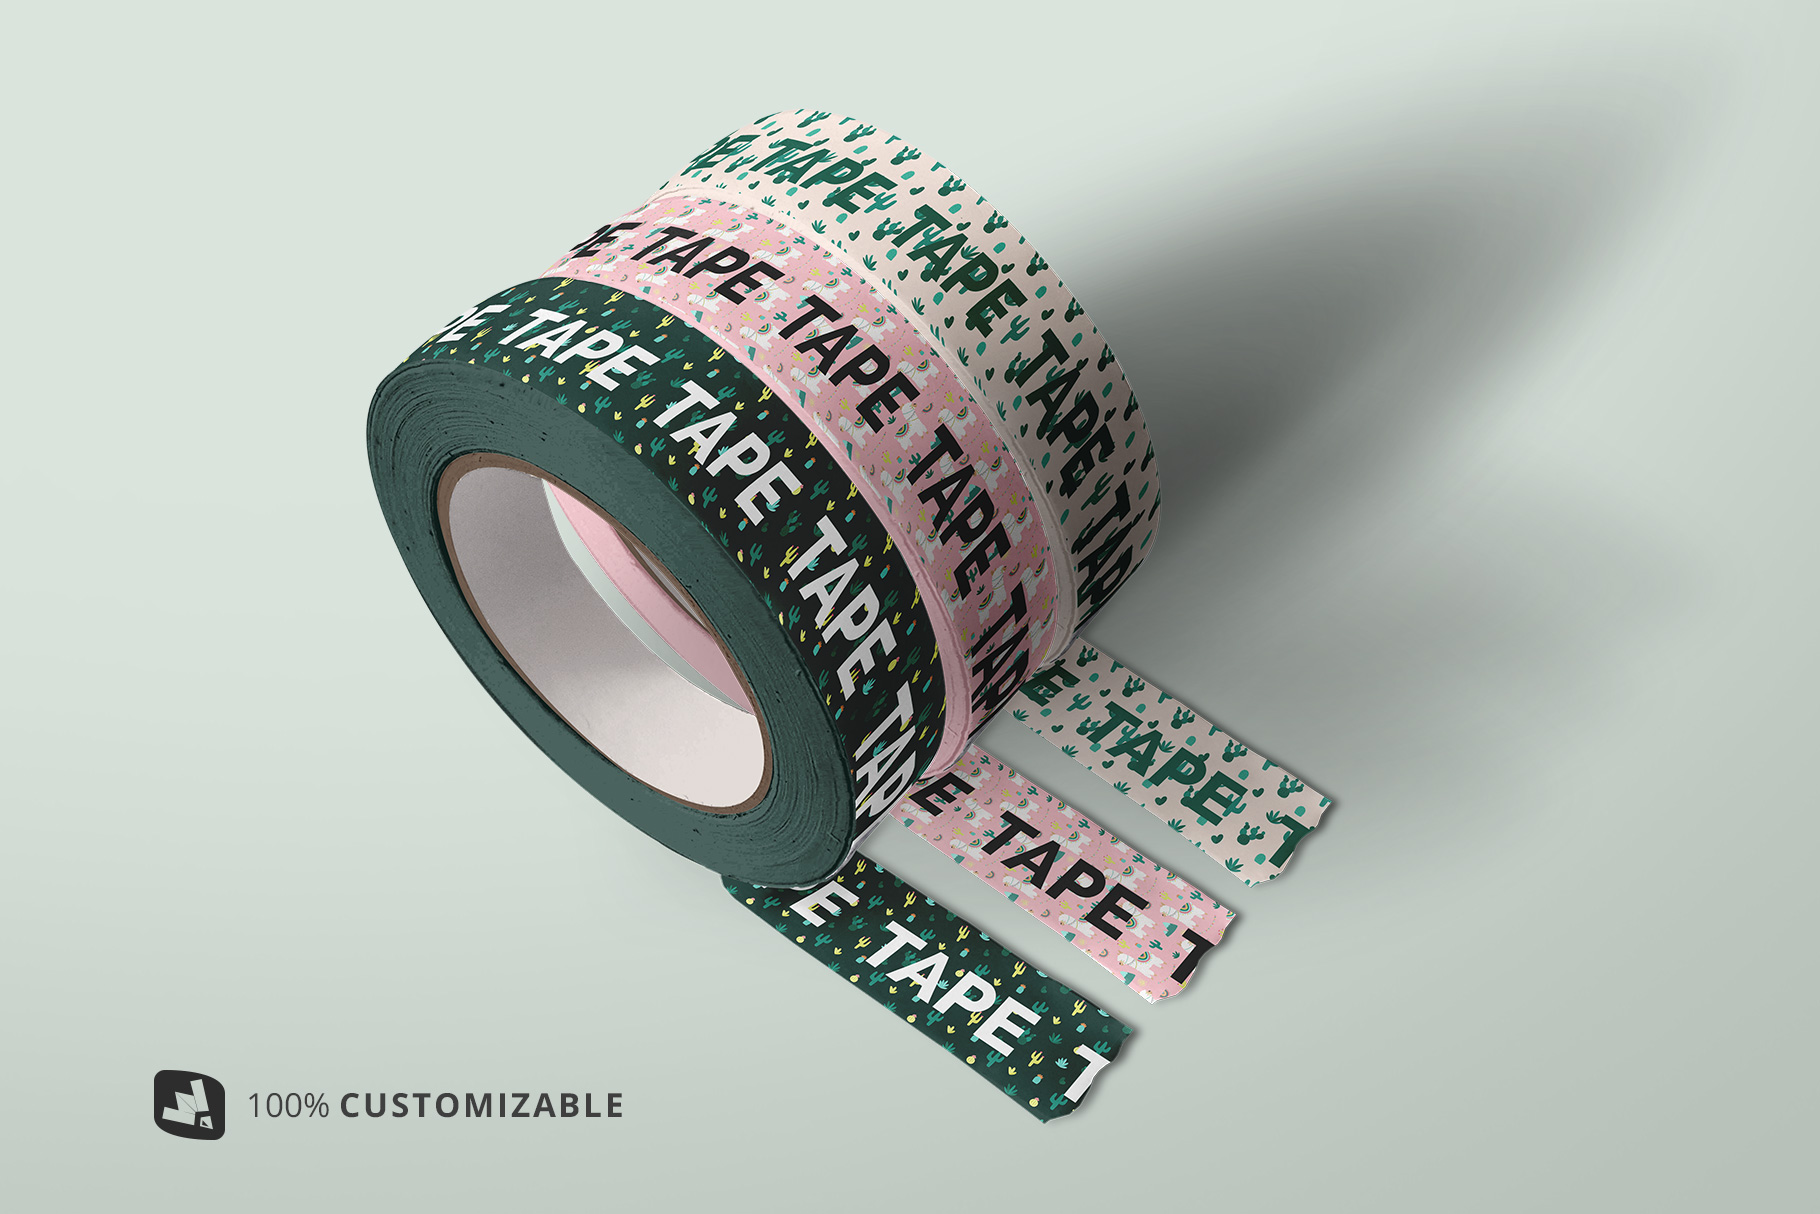 Themed Washi Tape Roll Mockup